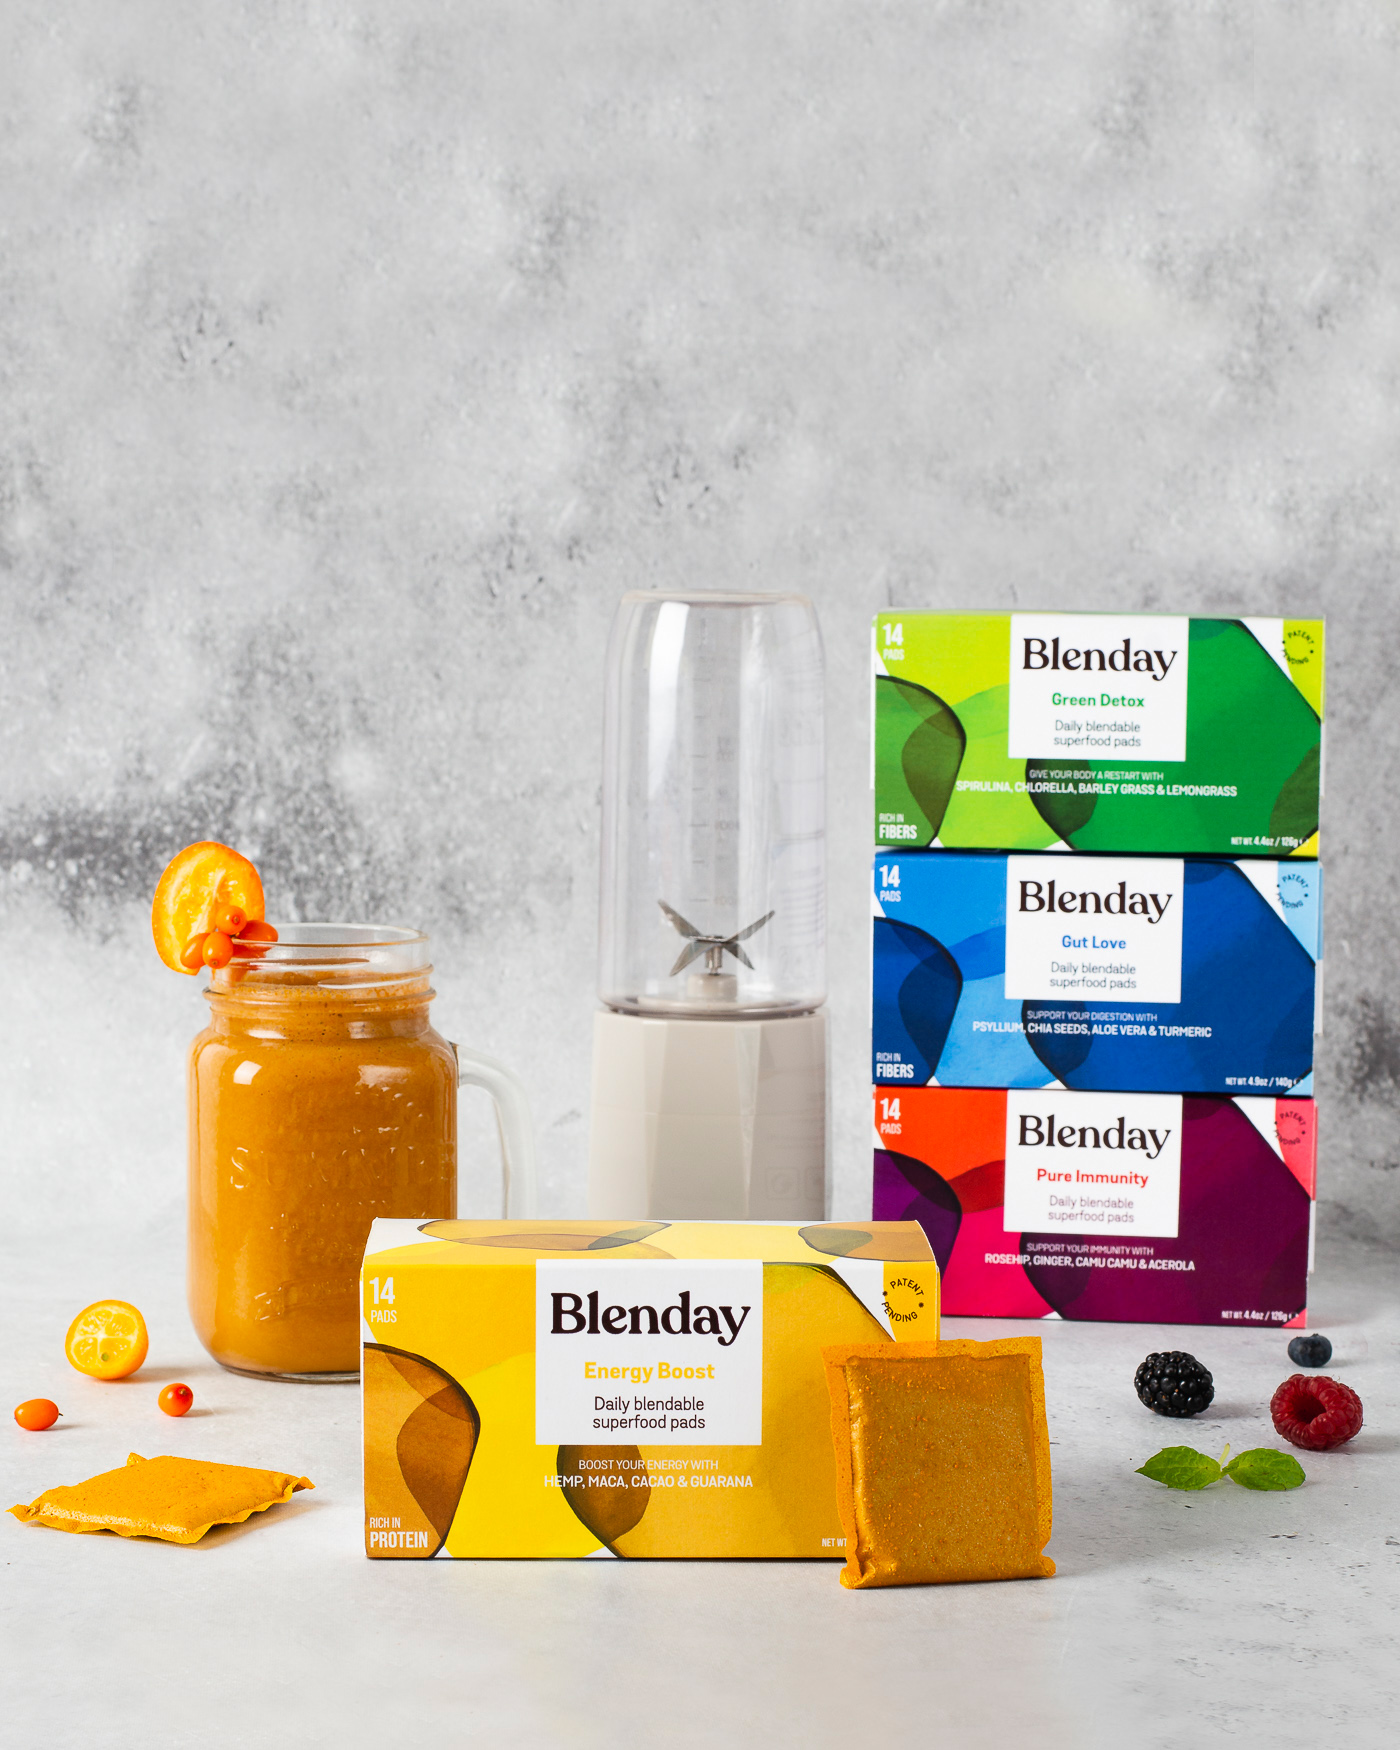 Blenday Blendable Superfood Pads to Boost Your Smoothies